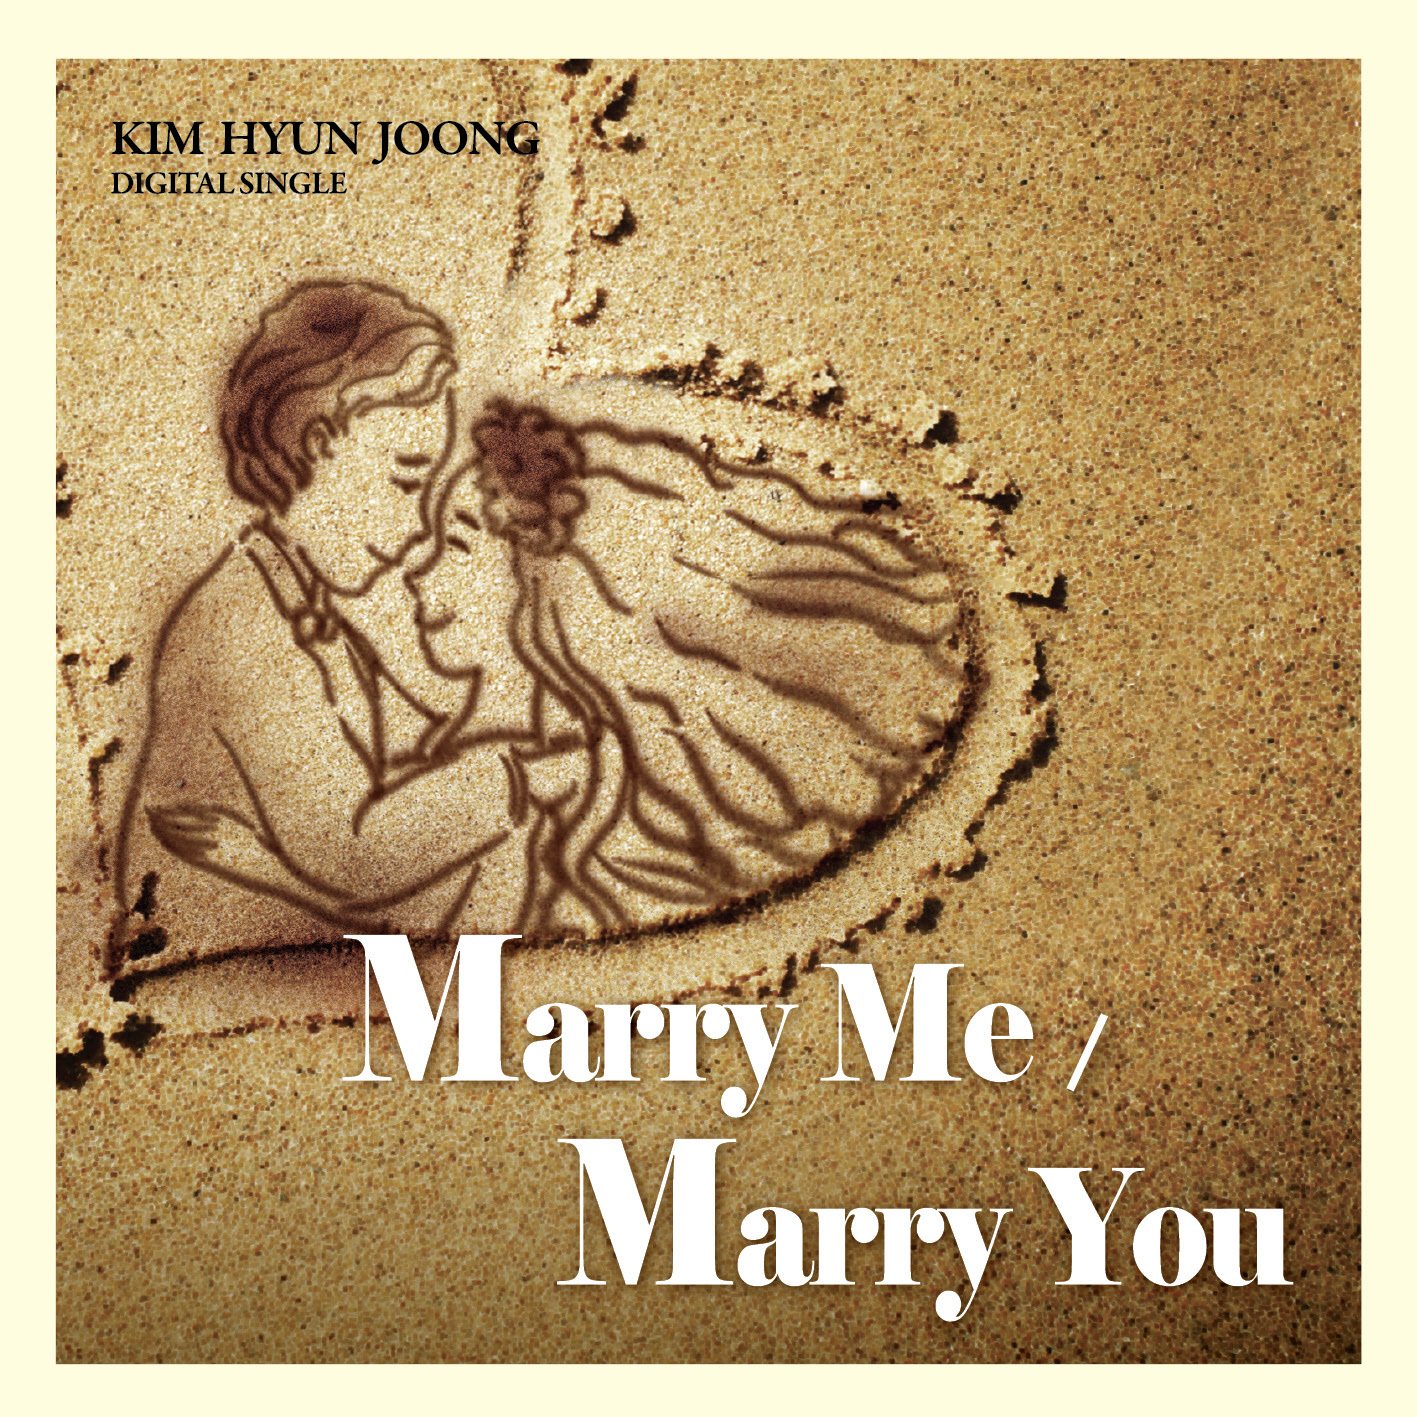 Single_Kim Hyun Joong – Marry Me - Marry You